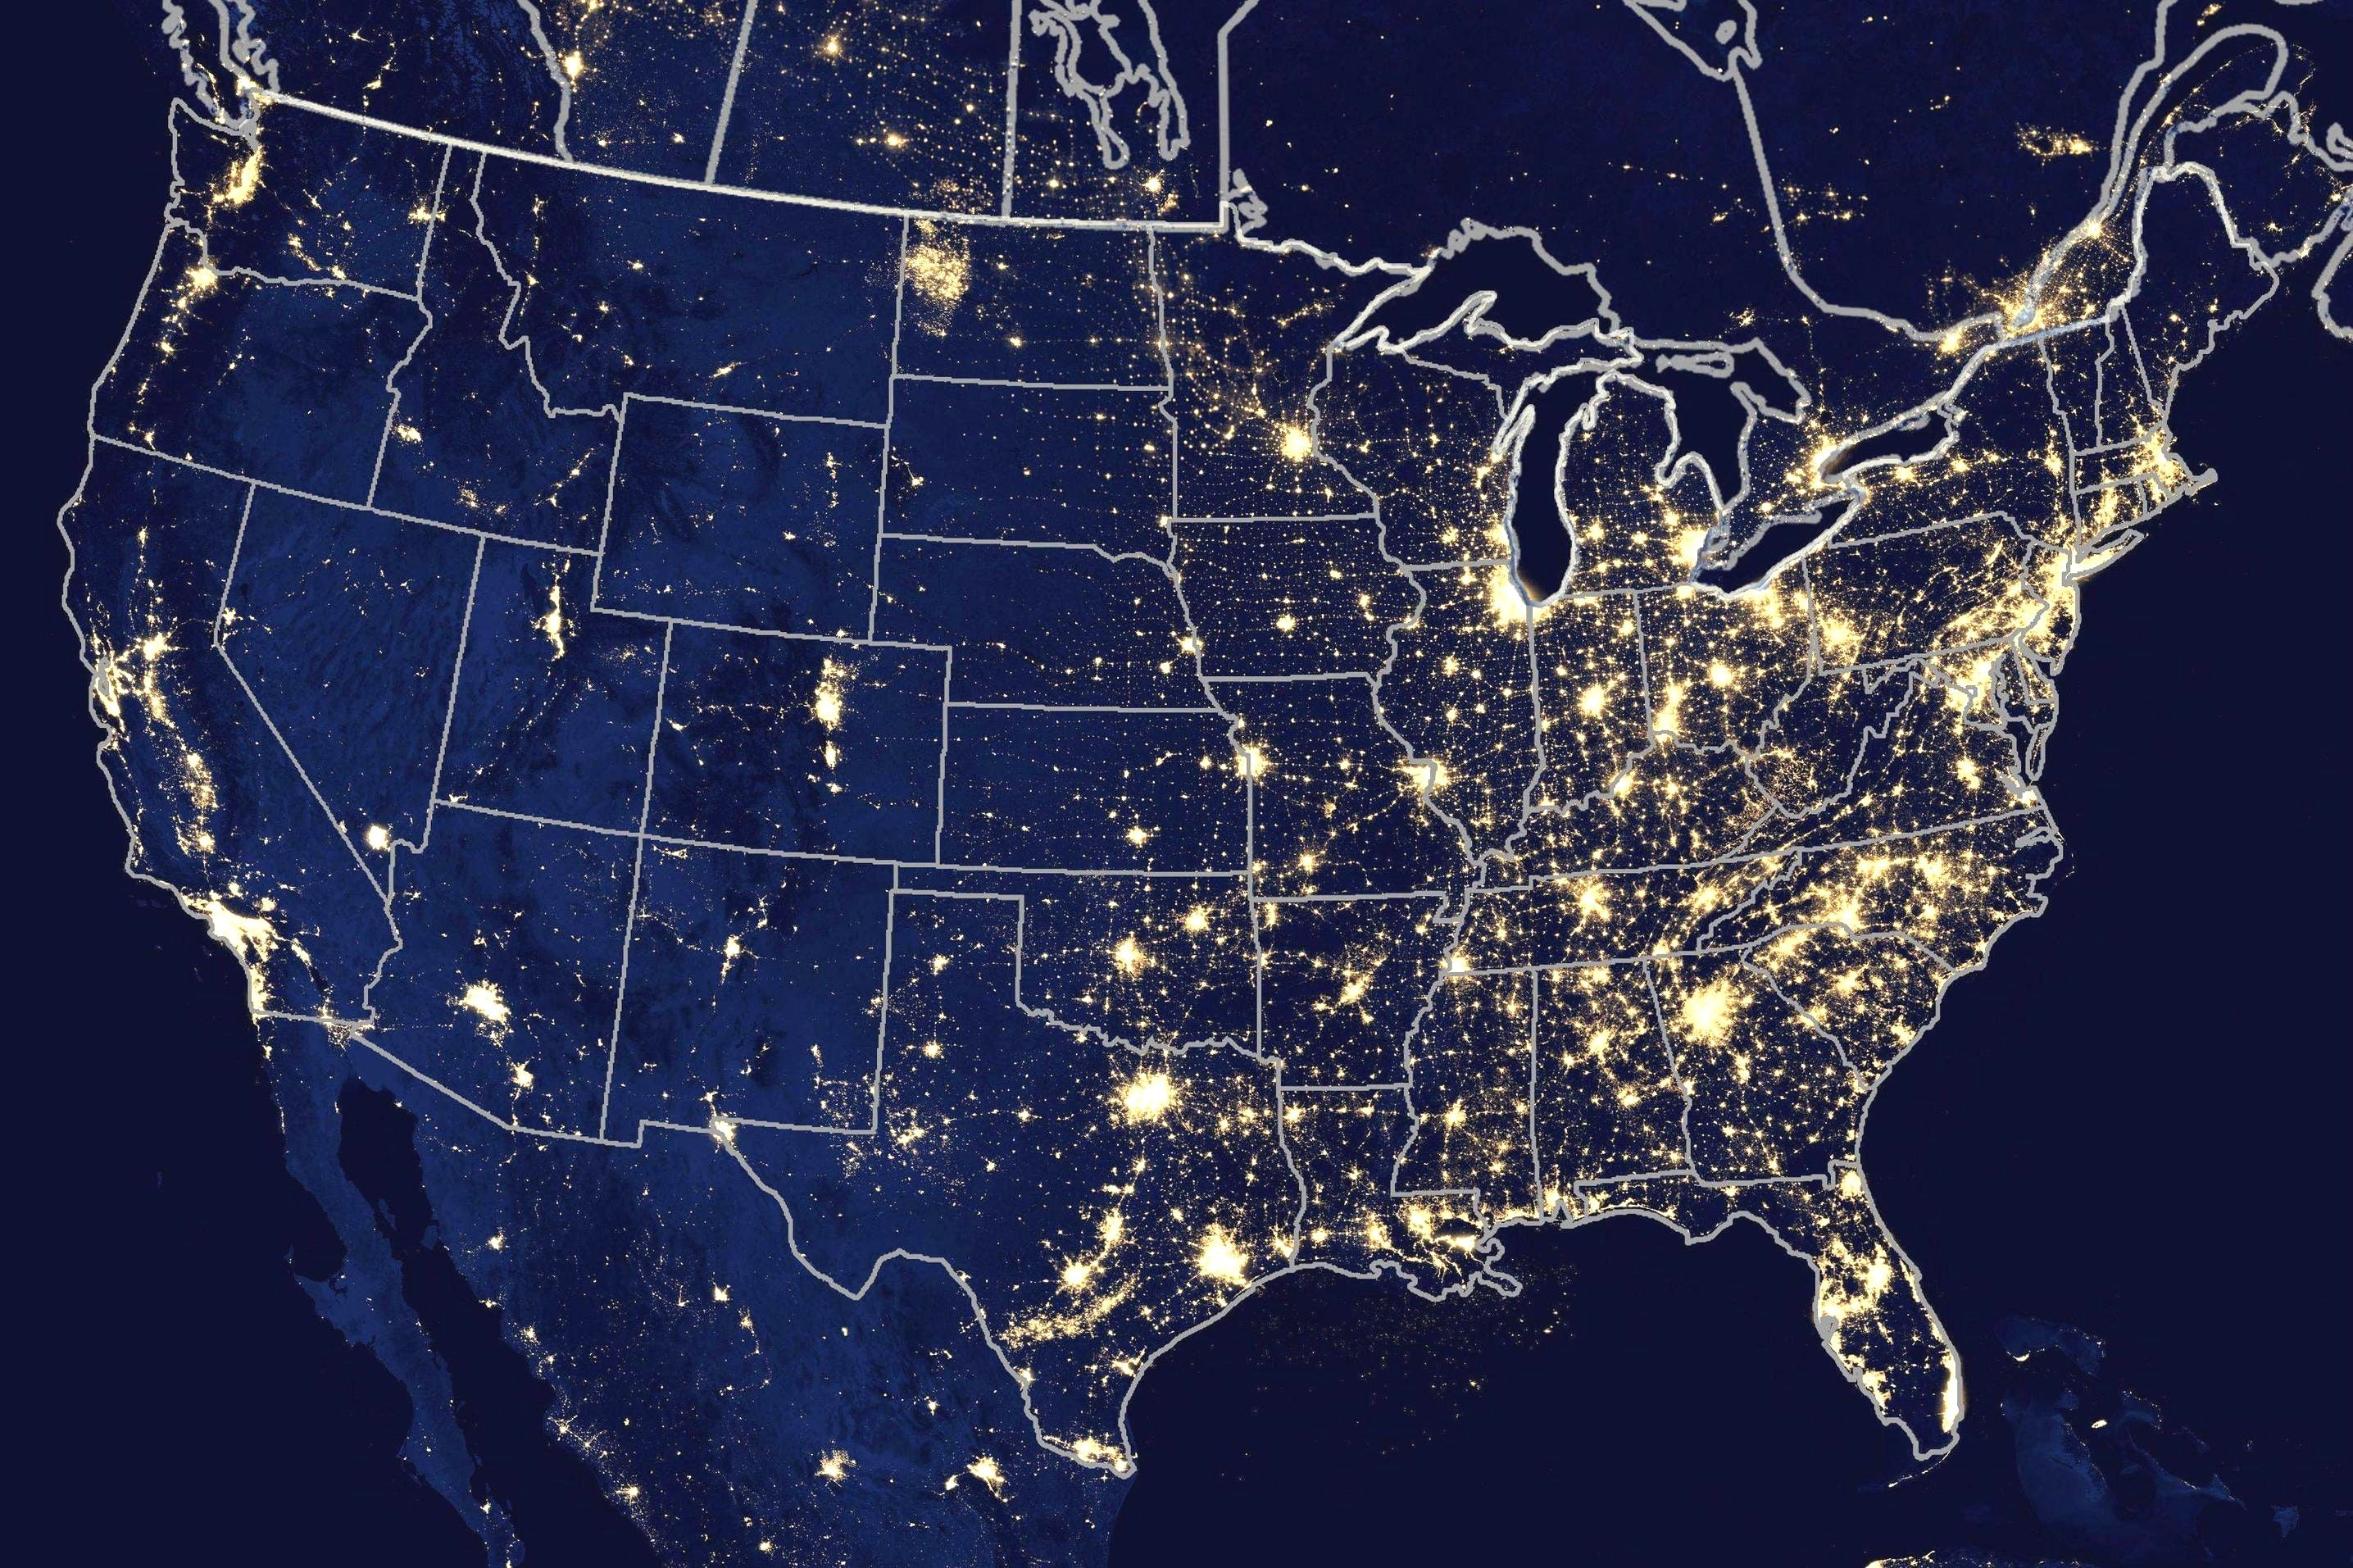 Us Map Lights At Night Wall Hd 2018 Inside Of Usa And WORLD MAPS ...